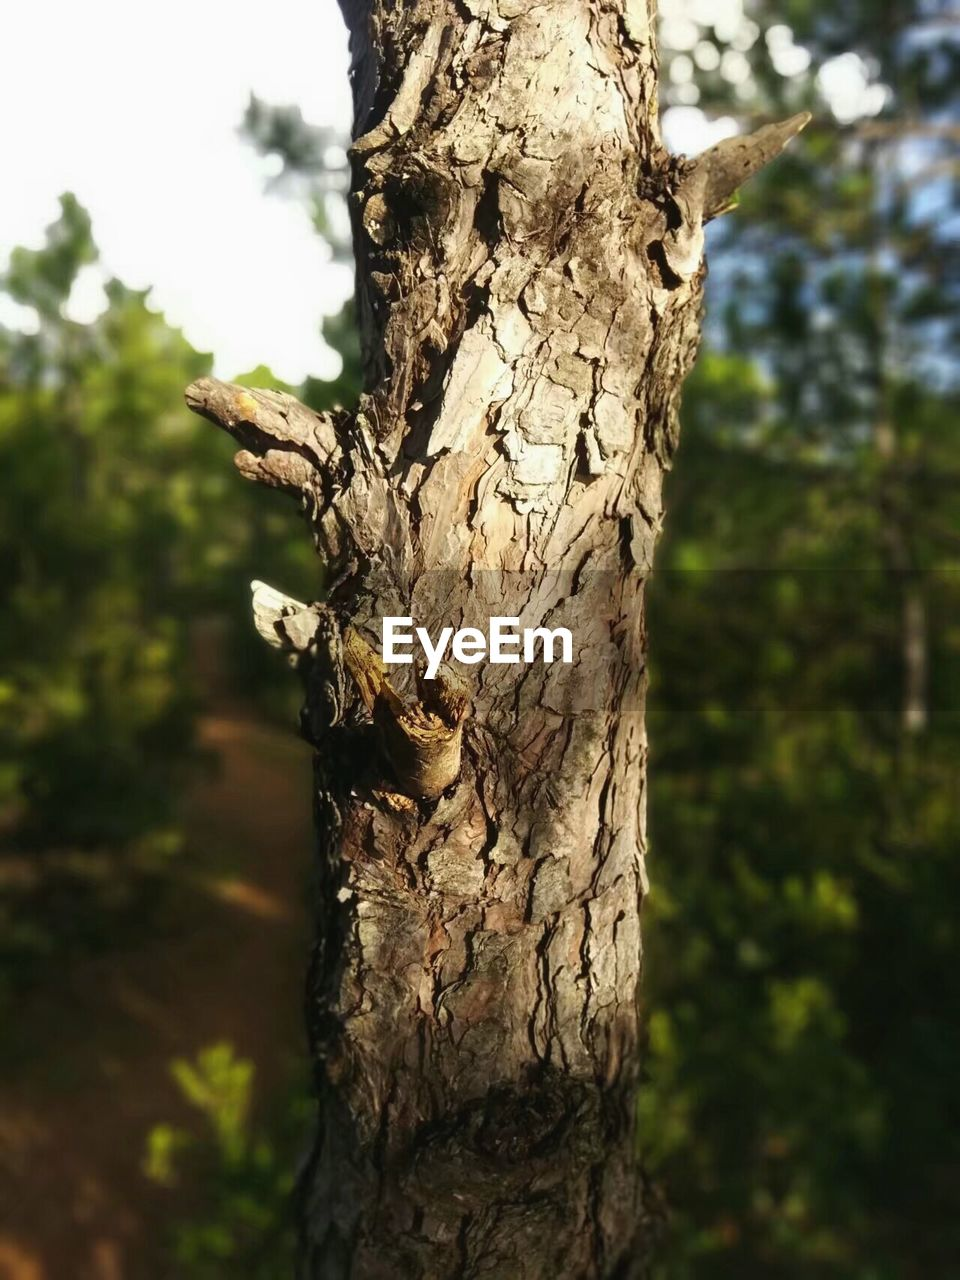 tree trunk, tree, focus on foreground, day, no people, nature, rough, close-up, tree stump, outdoors, bark, textured, wood - material, growth, dead tree